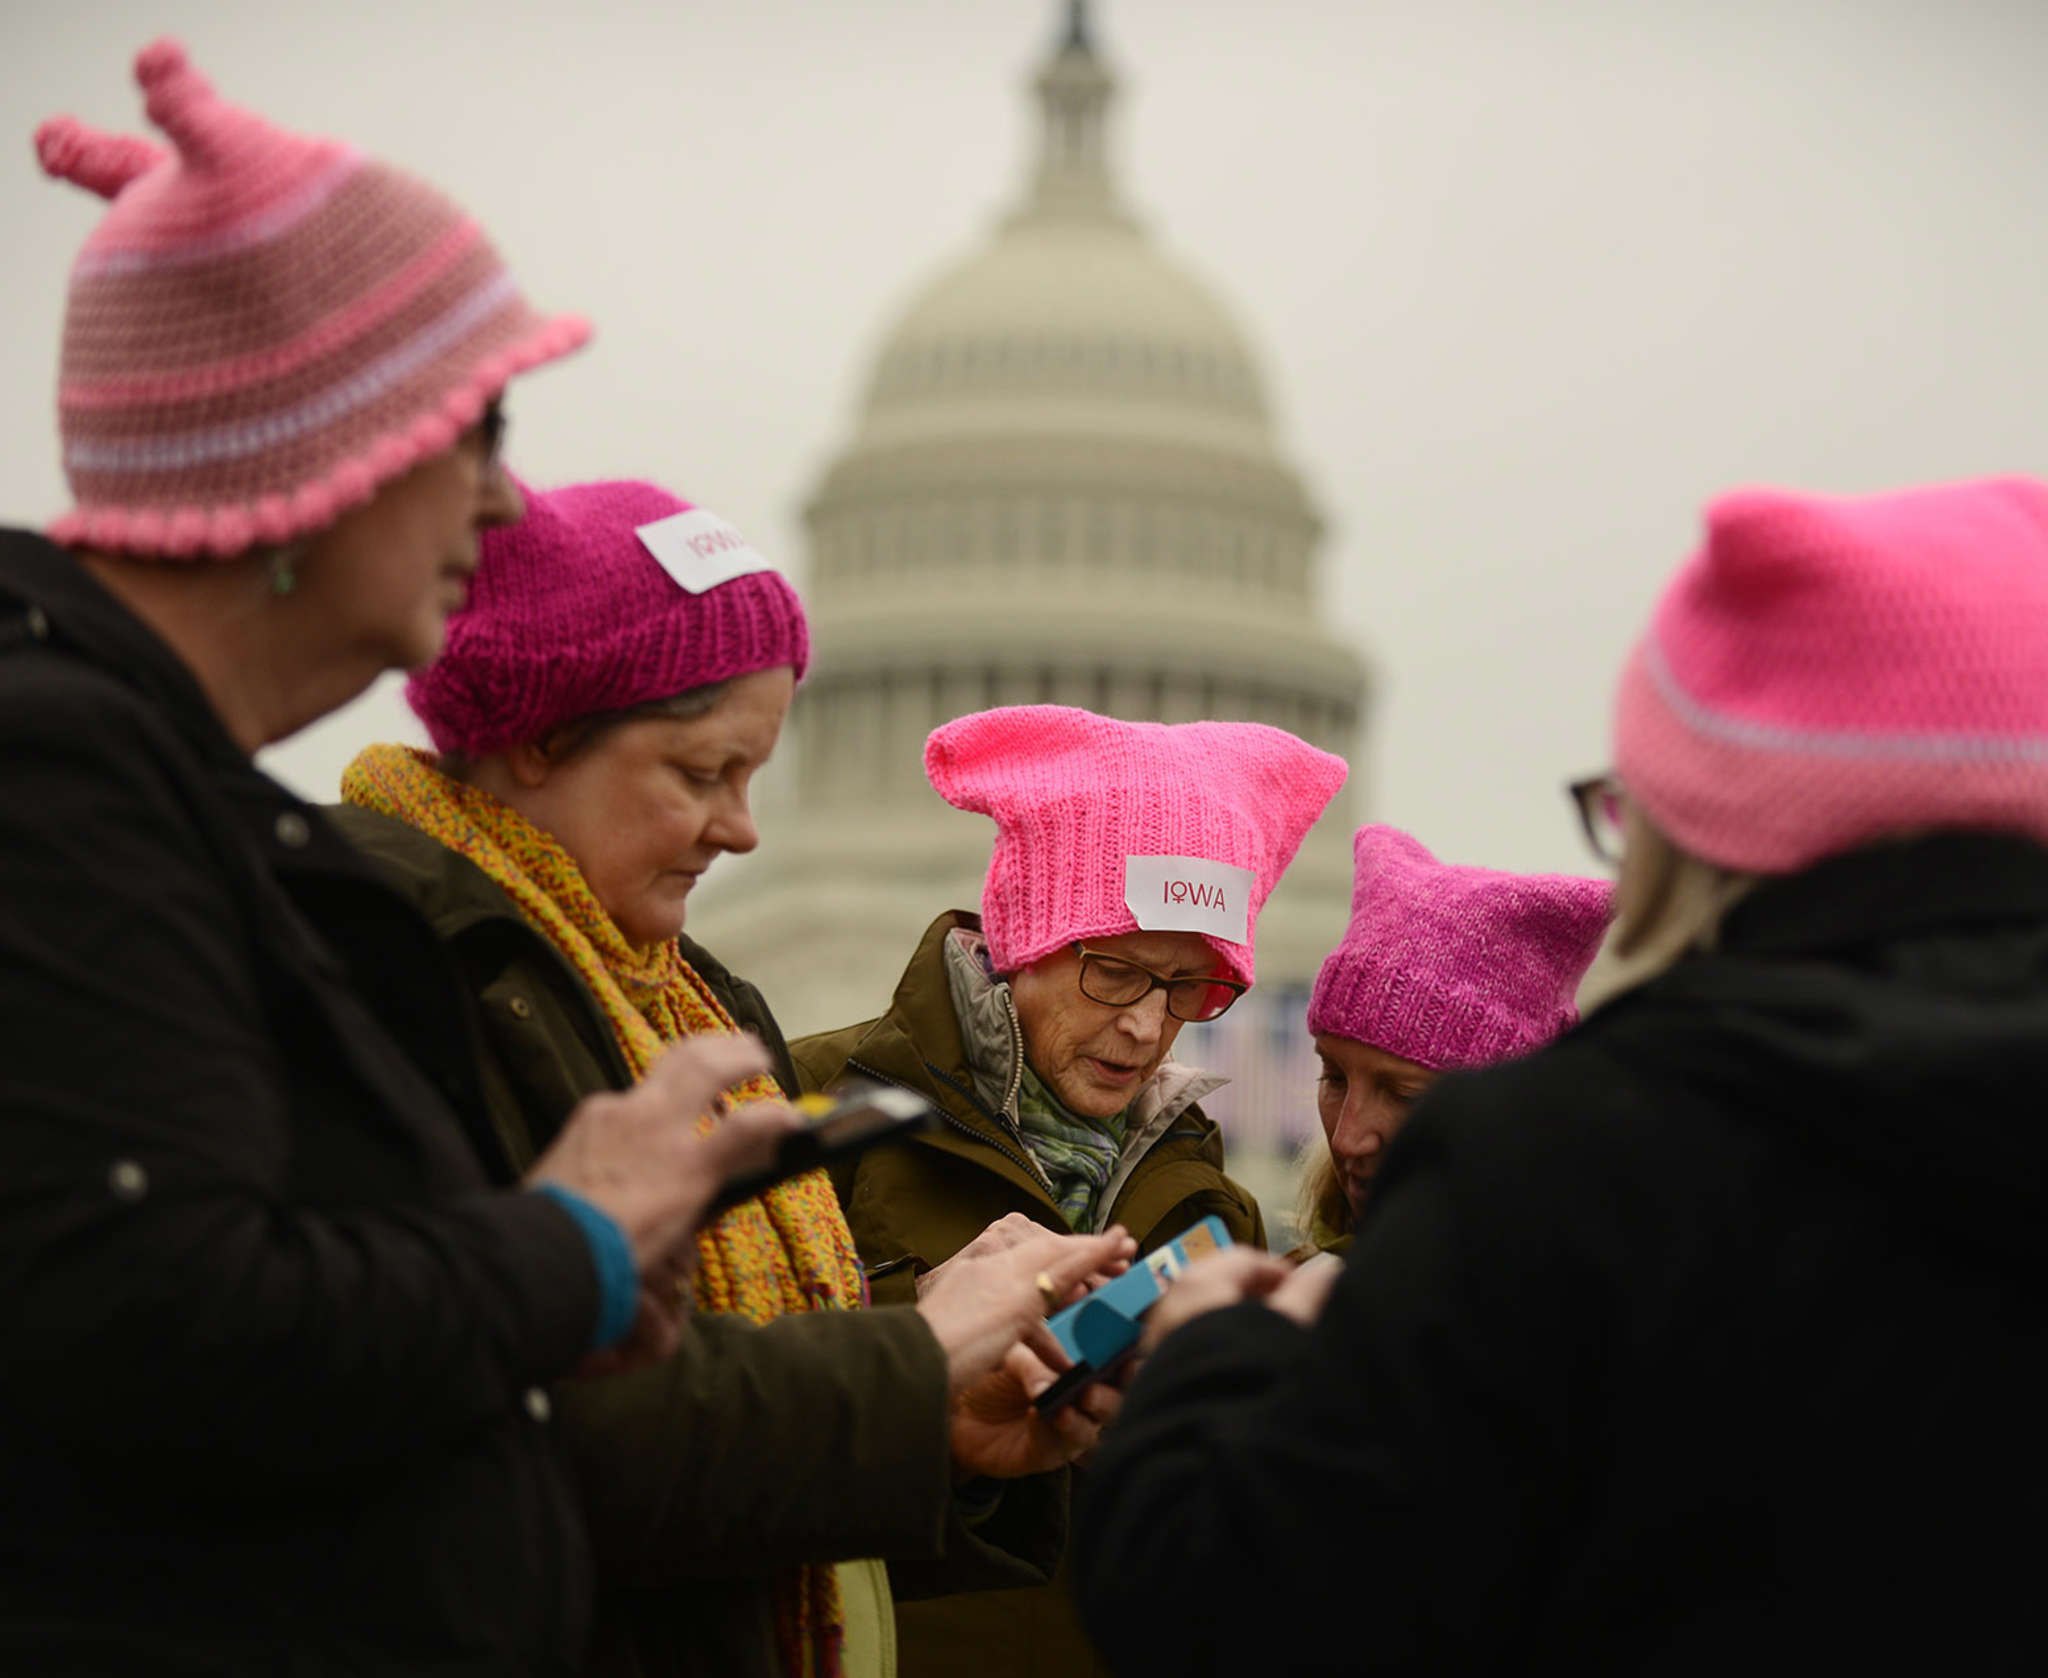 Women from Iowa in their self-made pink hats gathered near the Capitol last weekend. ASTRID RIECKEN / Washington Post